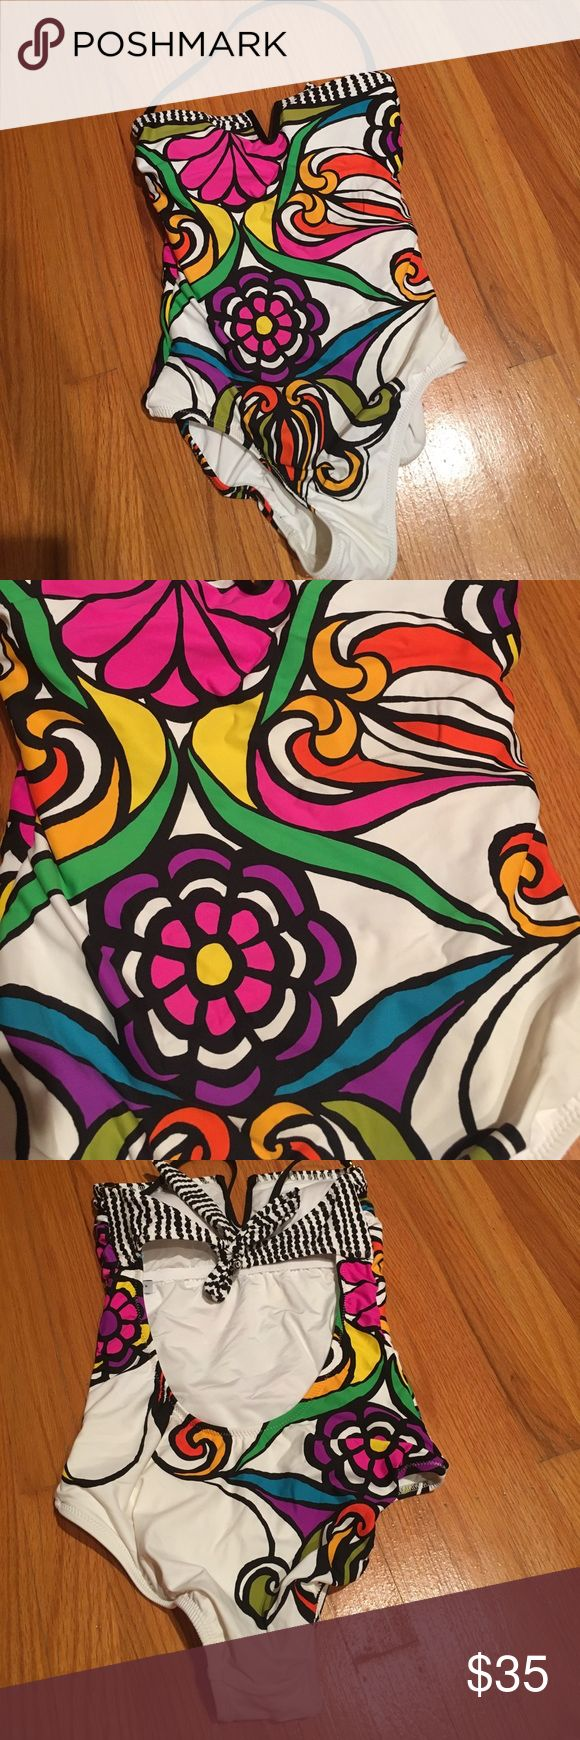 Trina Turk size 4 bathing suit NWOT Beautiful and colorful Trina turk bathing suit. I took off tags and washed but never wore. Colorful. Fully lined. Removable padding. Trina Turk Swim One Pieces